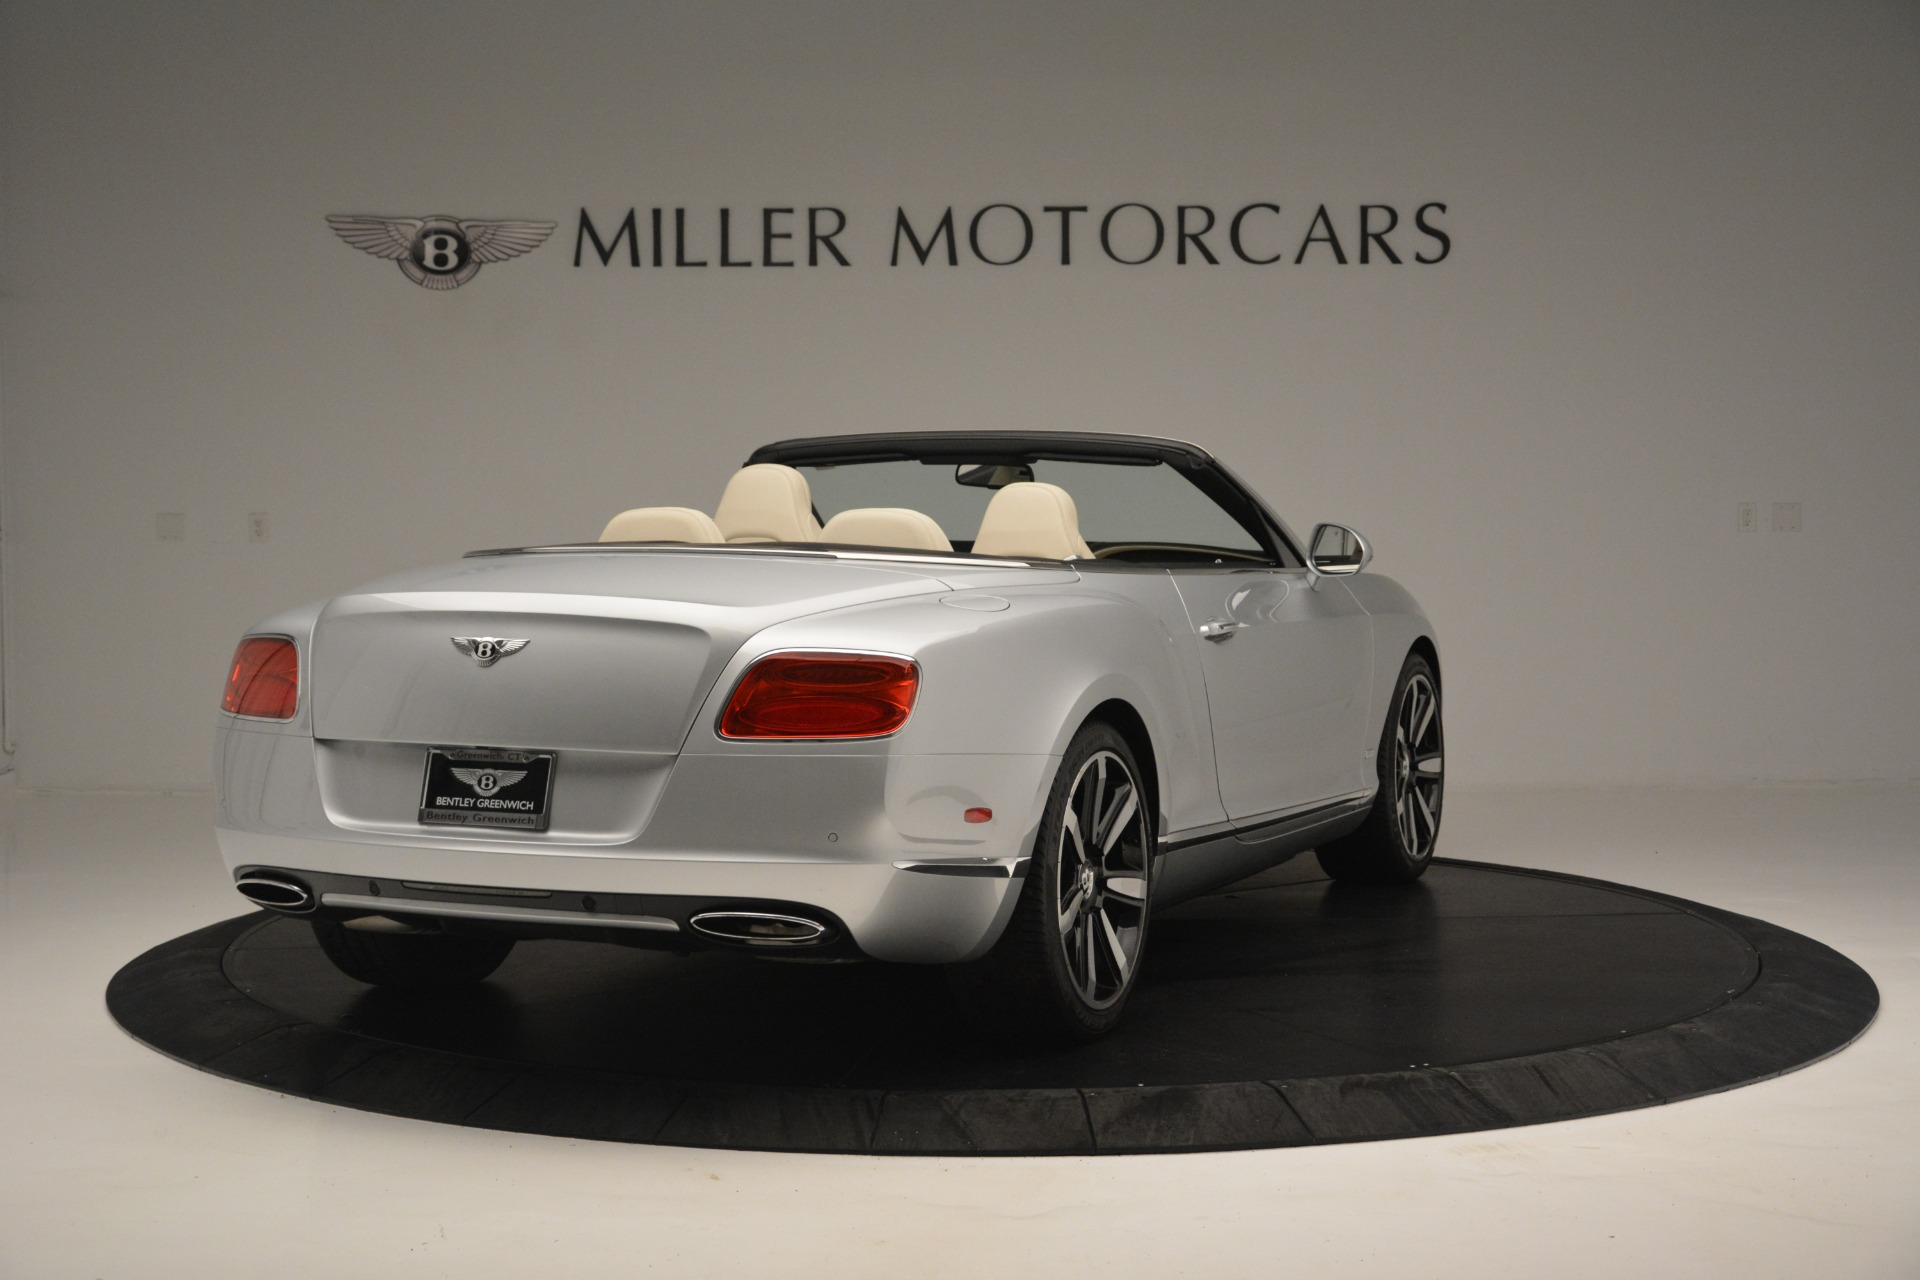 Used 2013 Bentley Continental GT W12 Le Mans Edition For Sale In Greenwich, CT 2519_p6